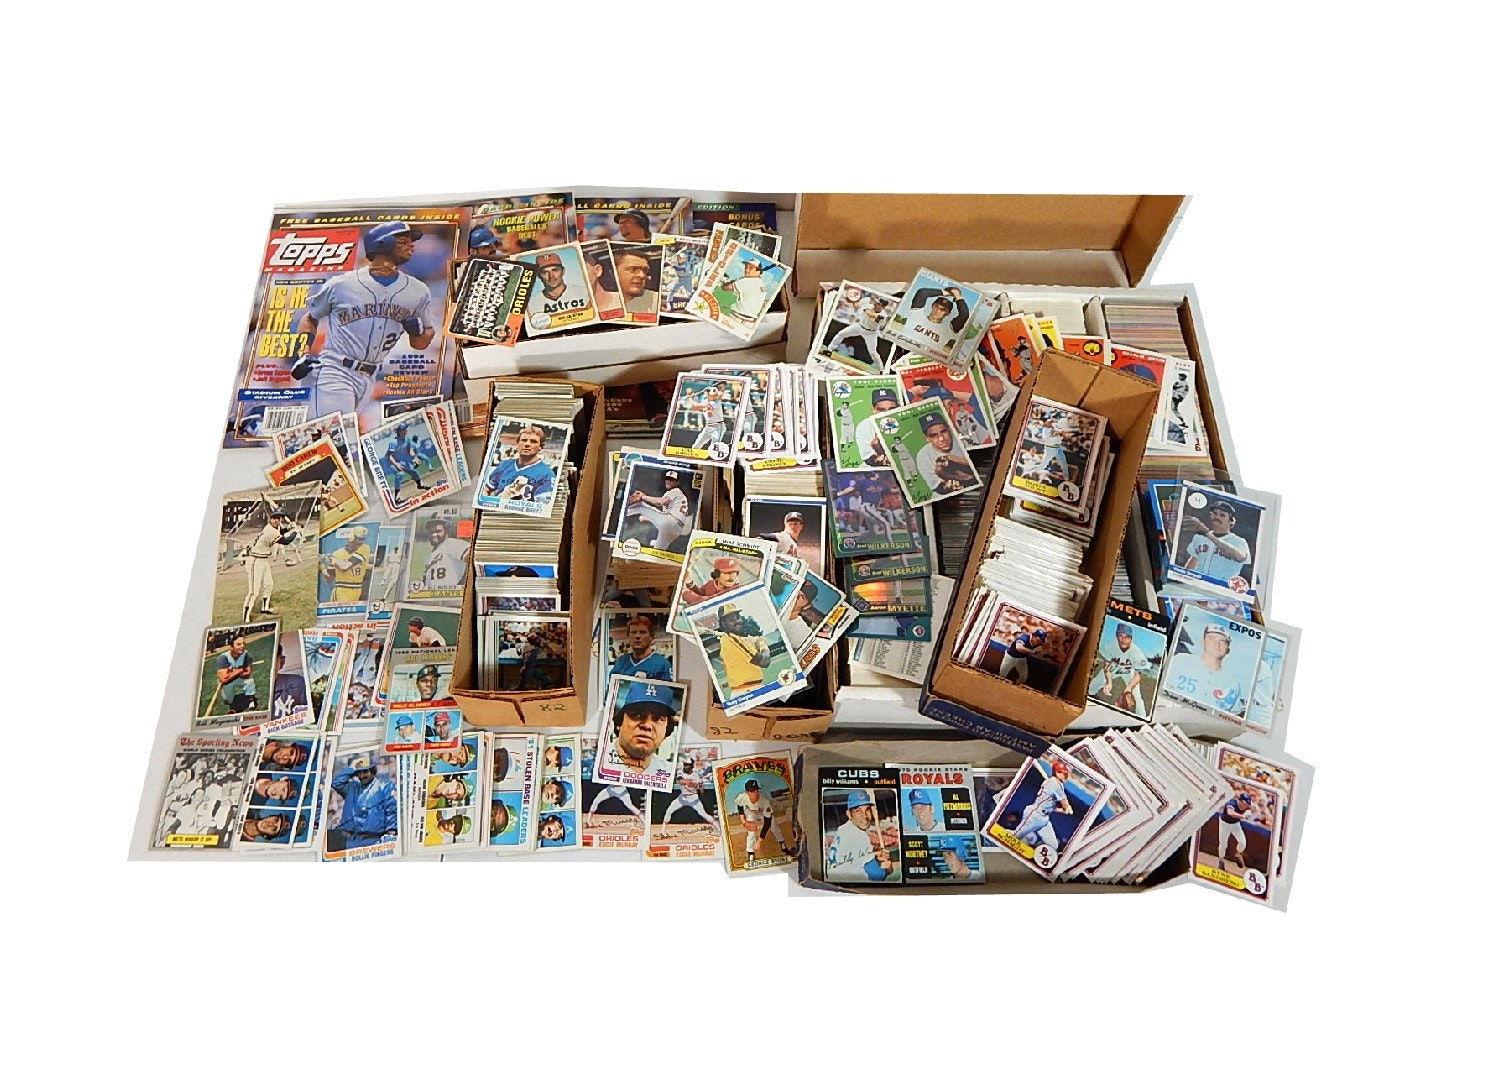 Large Baseball Card Collection - 5000 Card Count